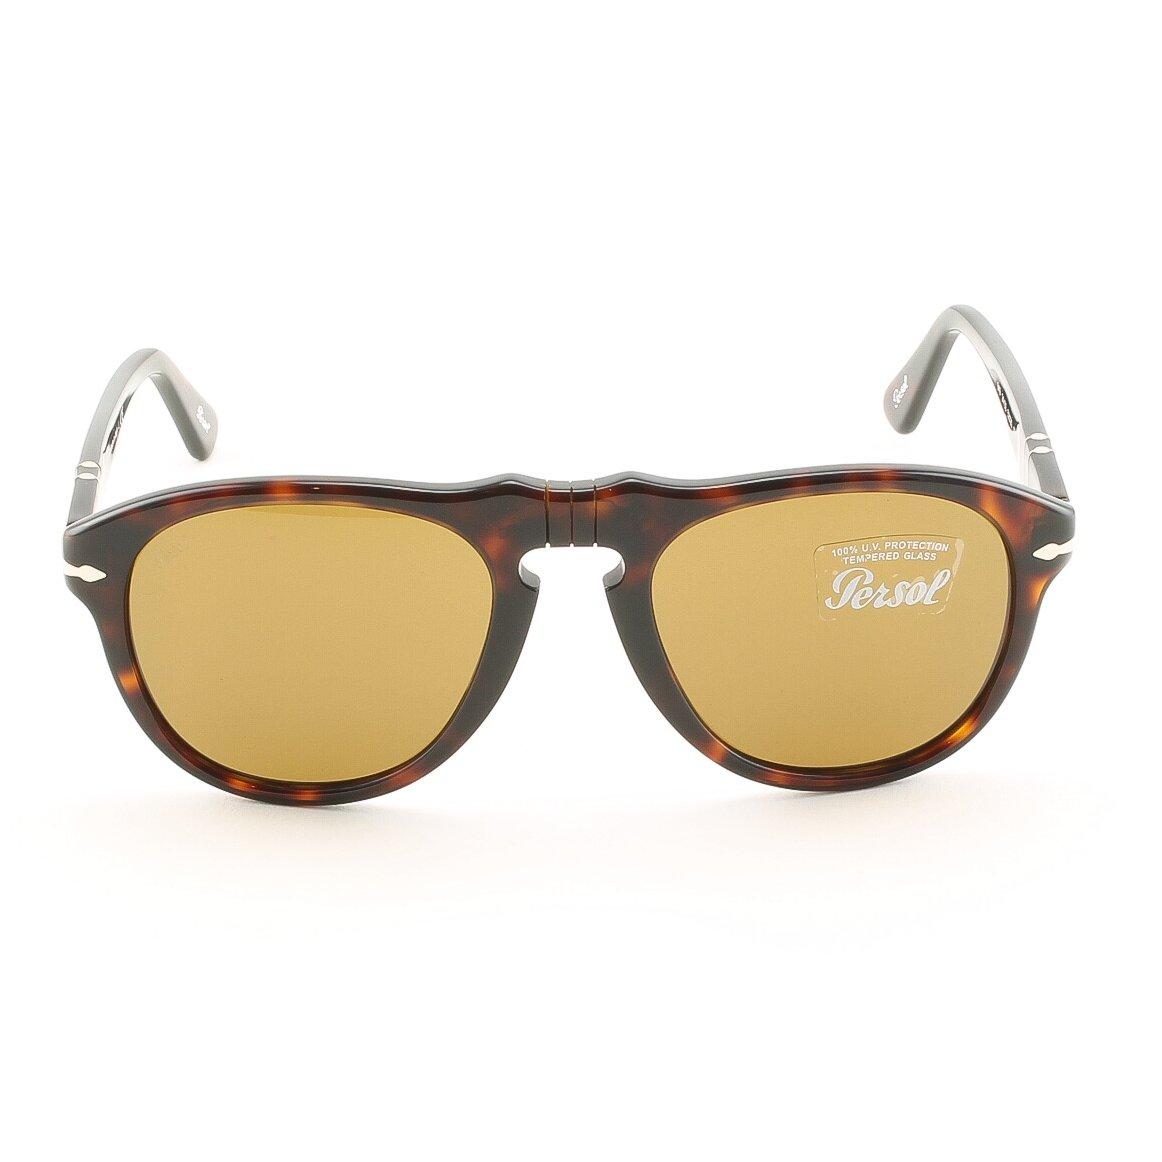 Persol PO0649 24/33 52 mm Havana Sunglasses with Brown Lenses